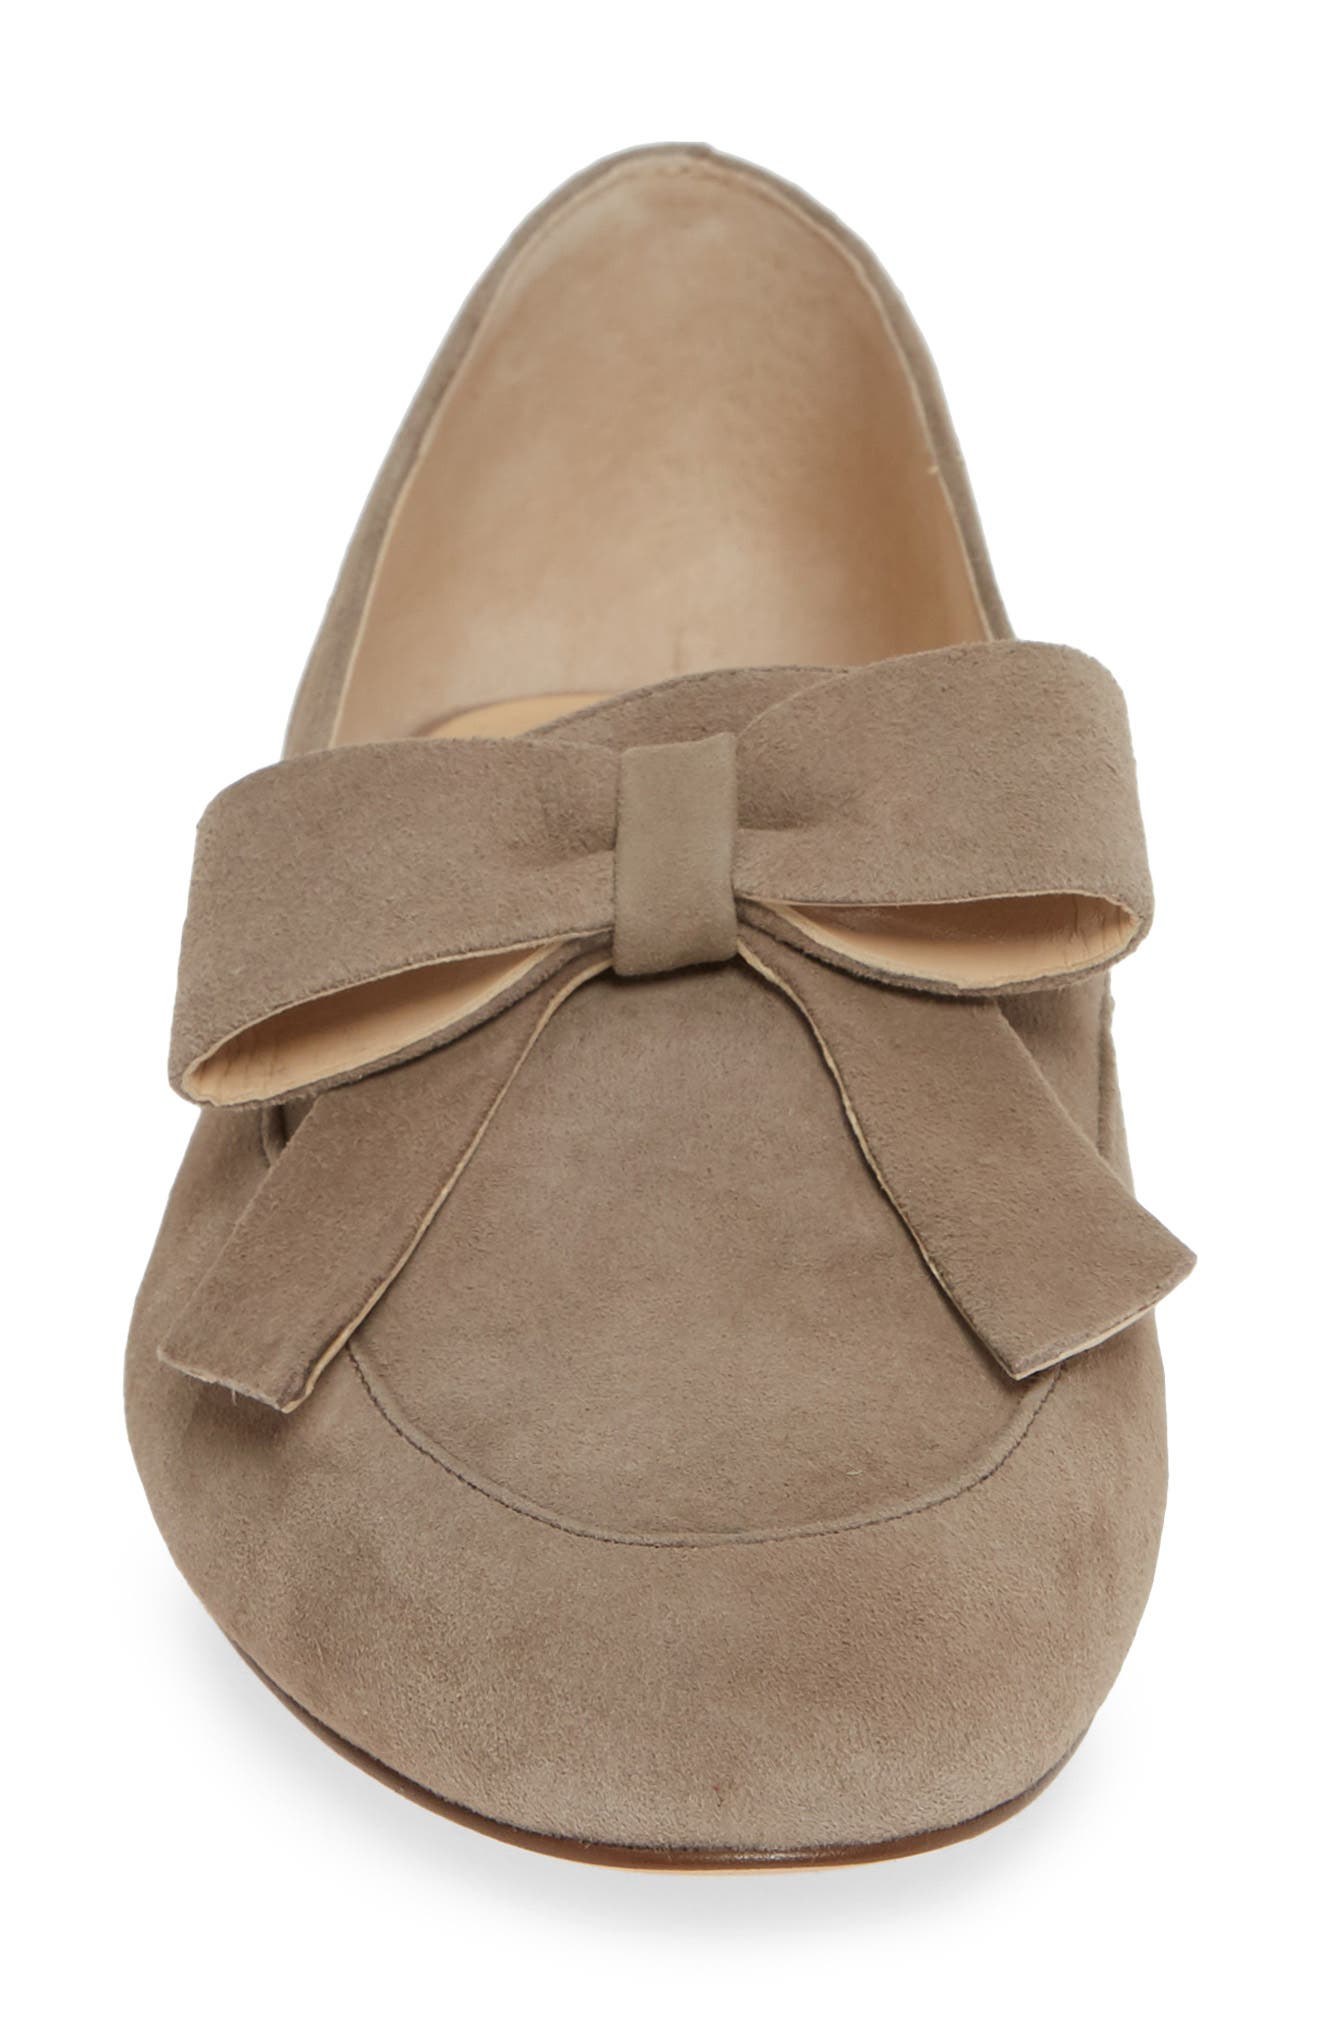 SOLE SOCIETY, Tannse Bow Loafer, Alternate thumbnail 4, color, MUSHROOM SUEDE